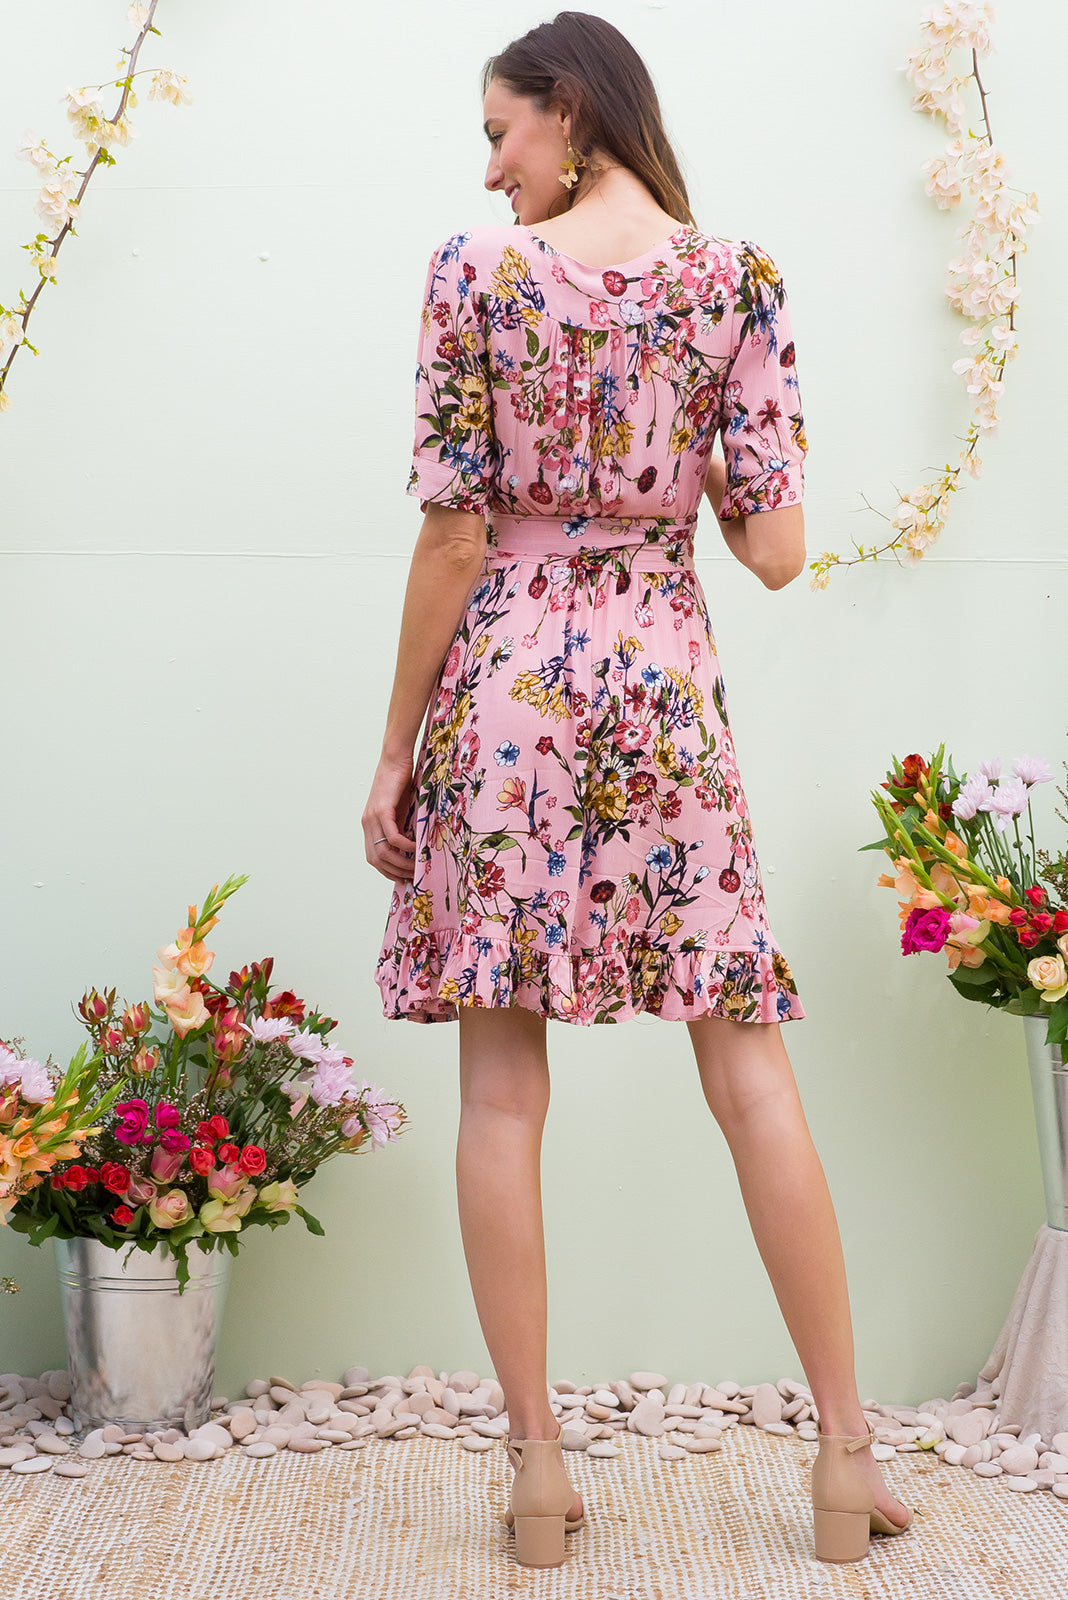 Antigua Pemberley Pink Maxi Wrap Dress in a 1940's inspired style with cuffed midi sleeves and a delicate hemline frill in a rose petal pink wildflower floral print on crinkle woven rayon